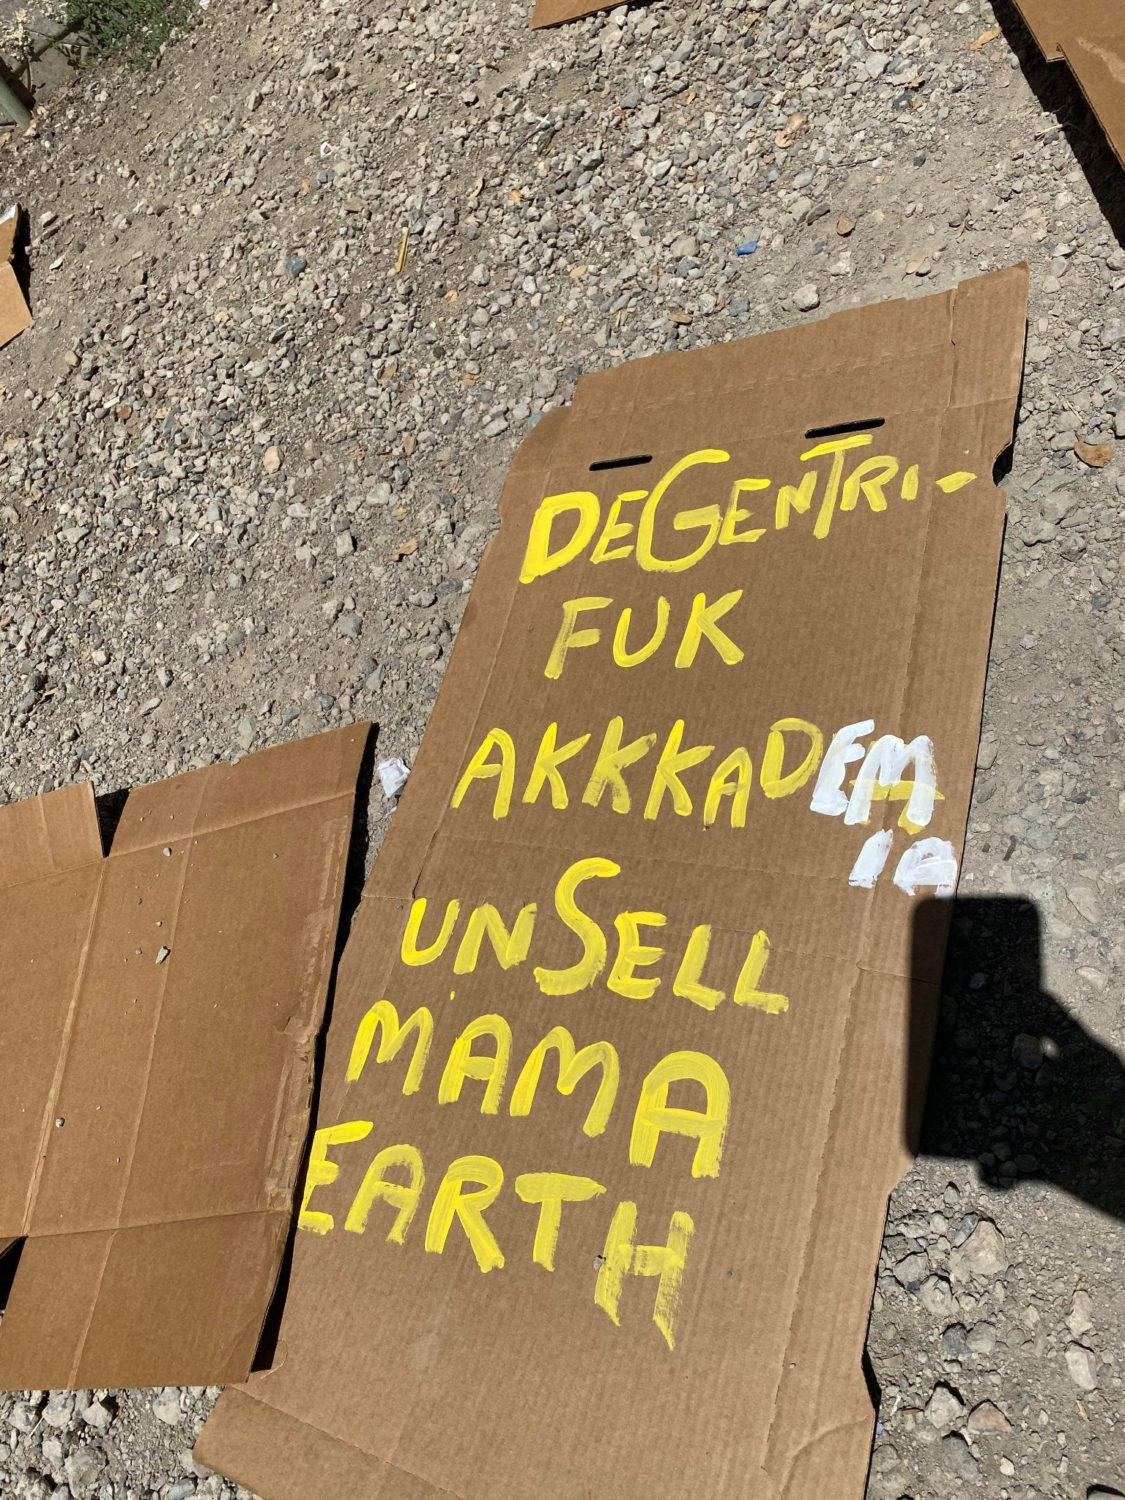 DegentriFUK-Akkkademia-UnSell-Mama-Earth-sign, From poverty tows to Palestine: The violence of settler colonial evictions across Mama Earth, World News & Views